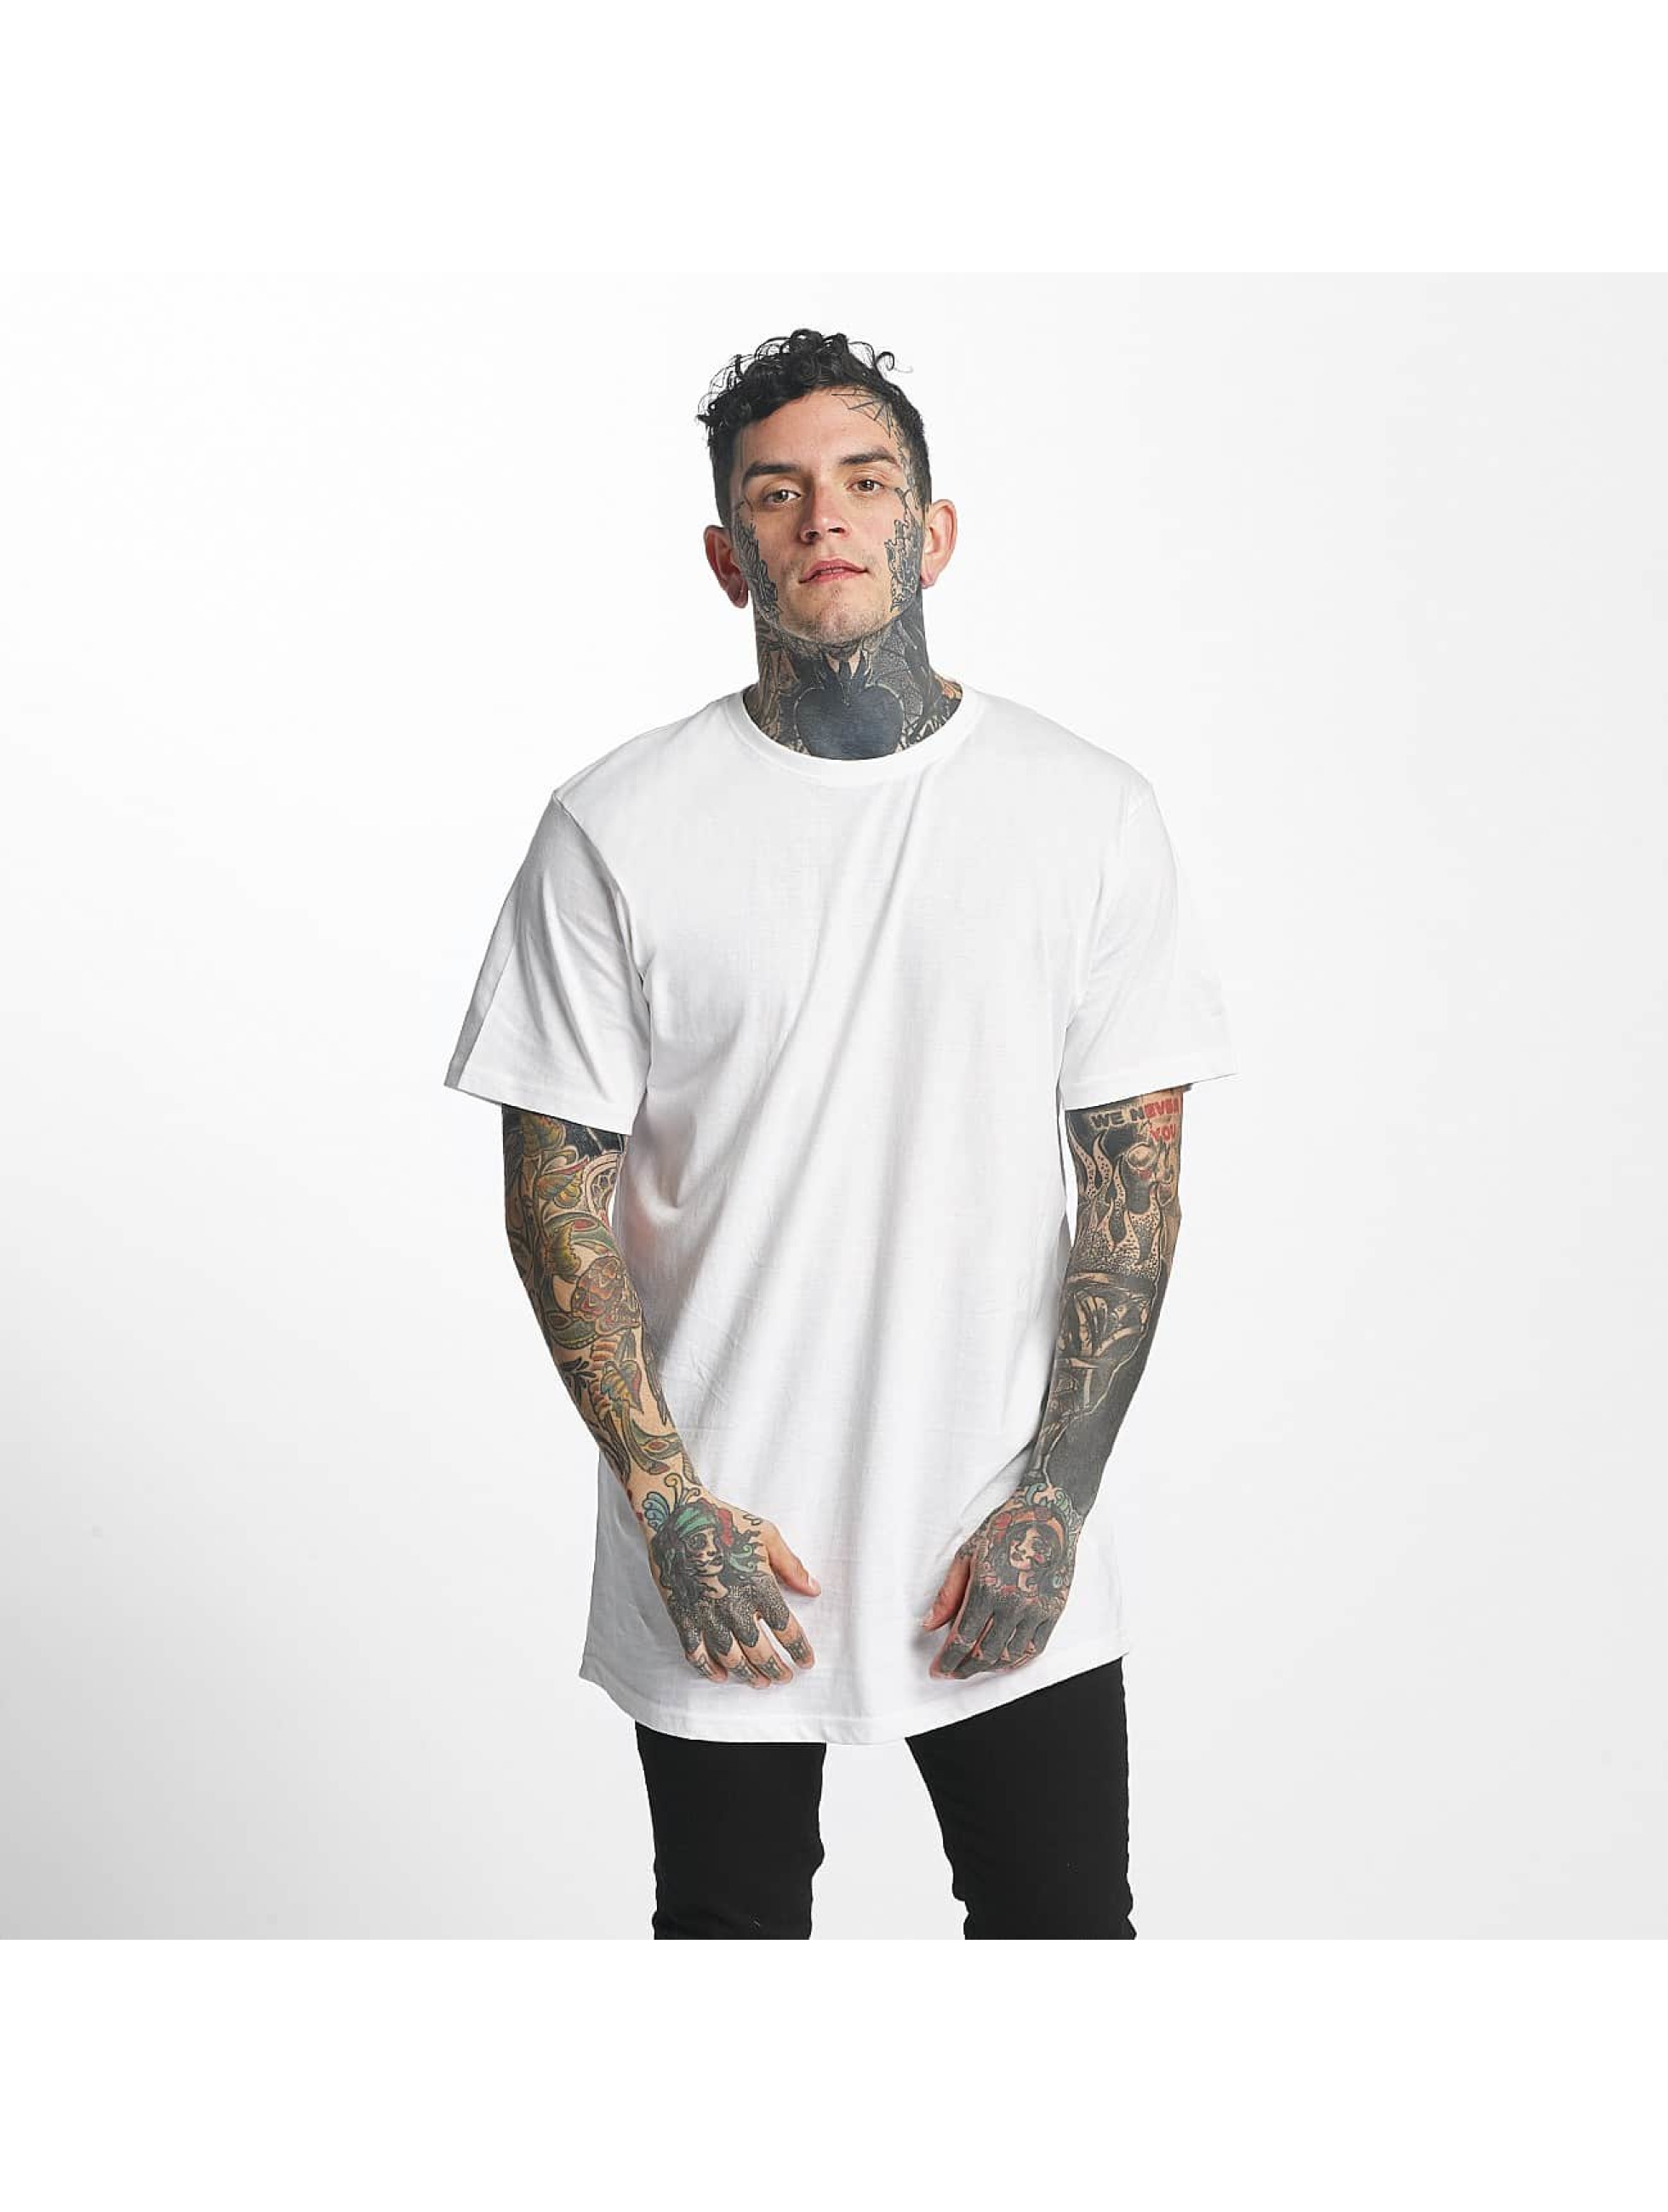 Tuffskull Männer Tall Tees nothing in weiß